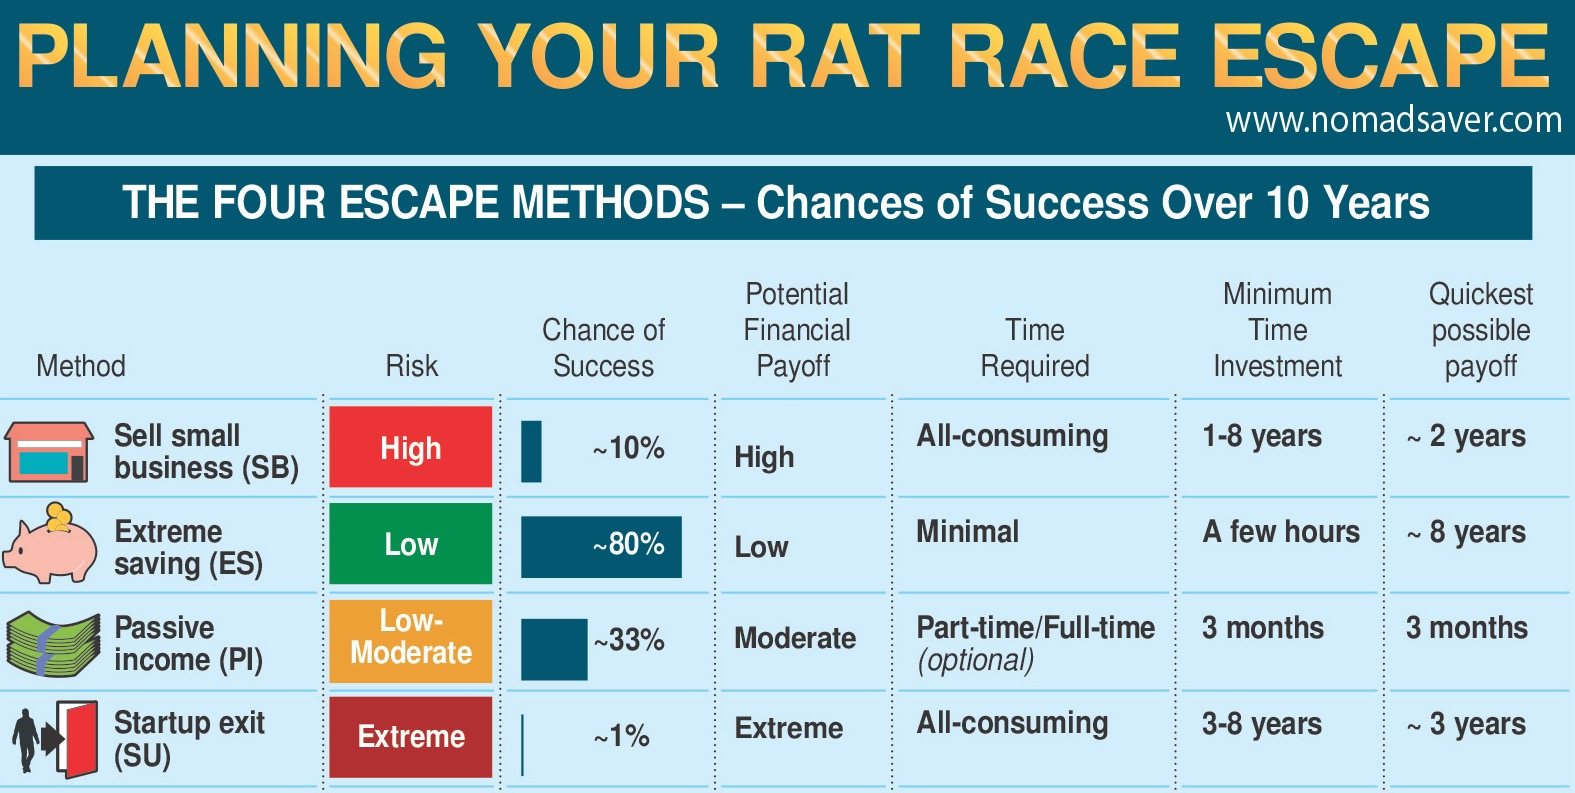 How to Escape the Rat Race: A Zero BS Guide - Part 1